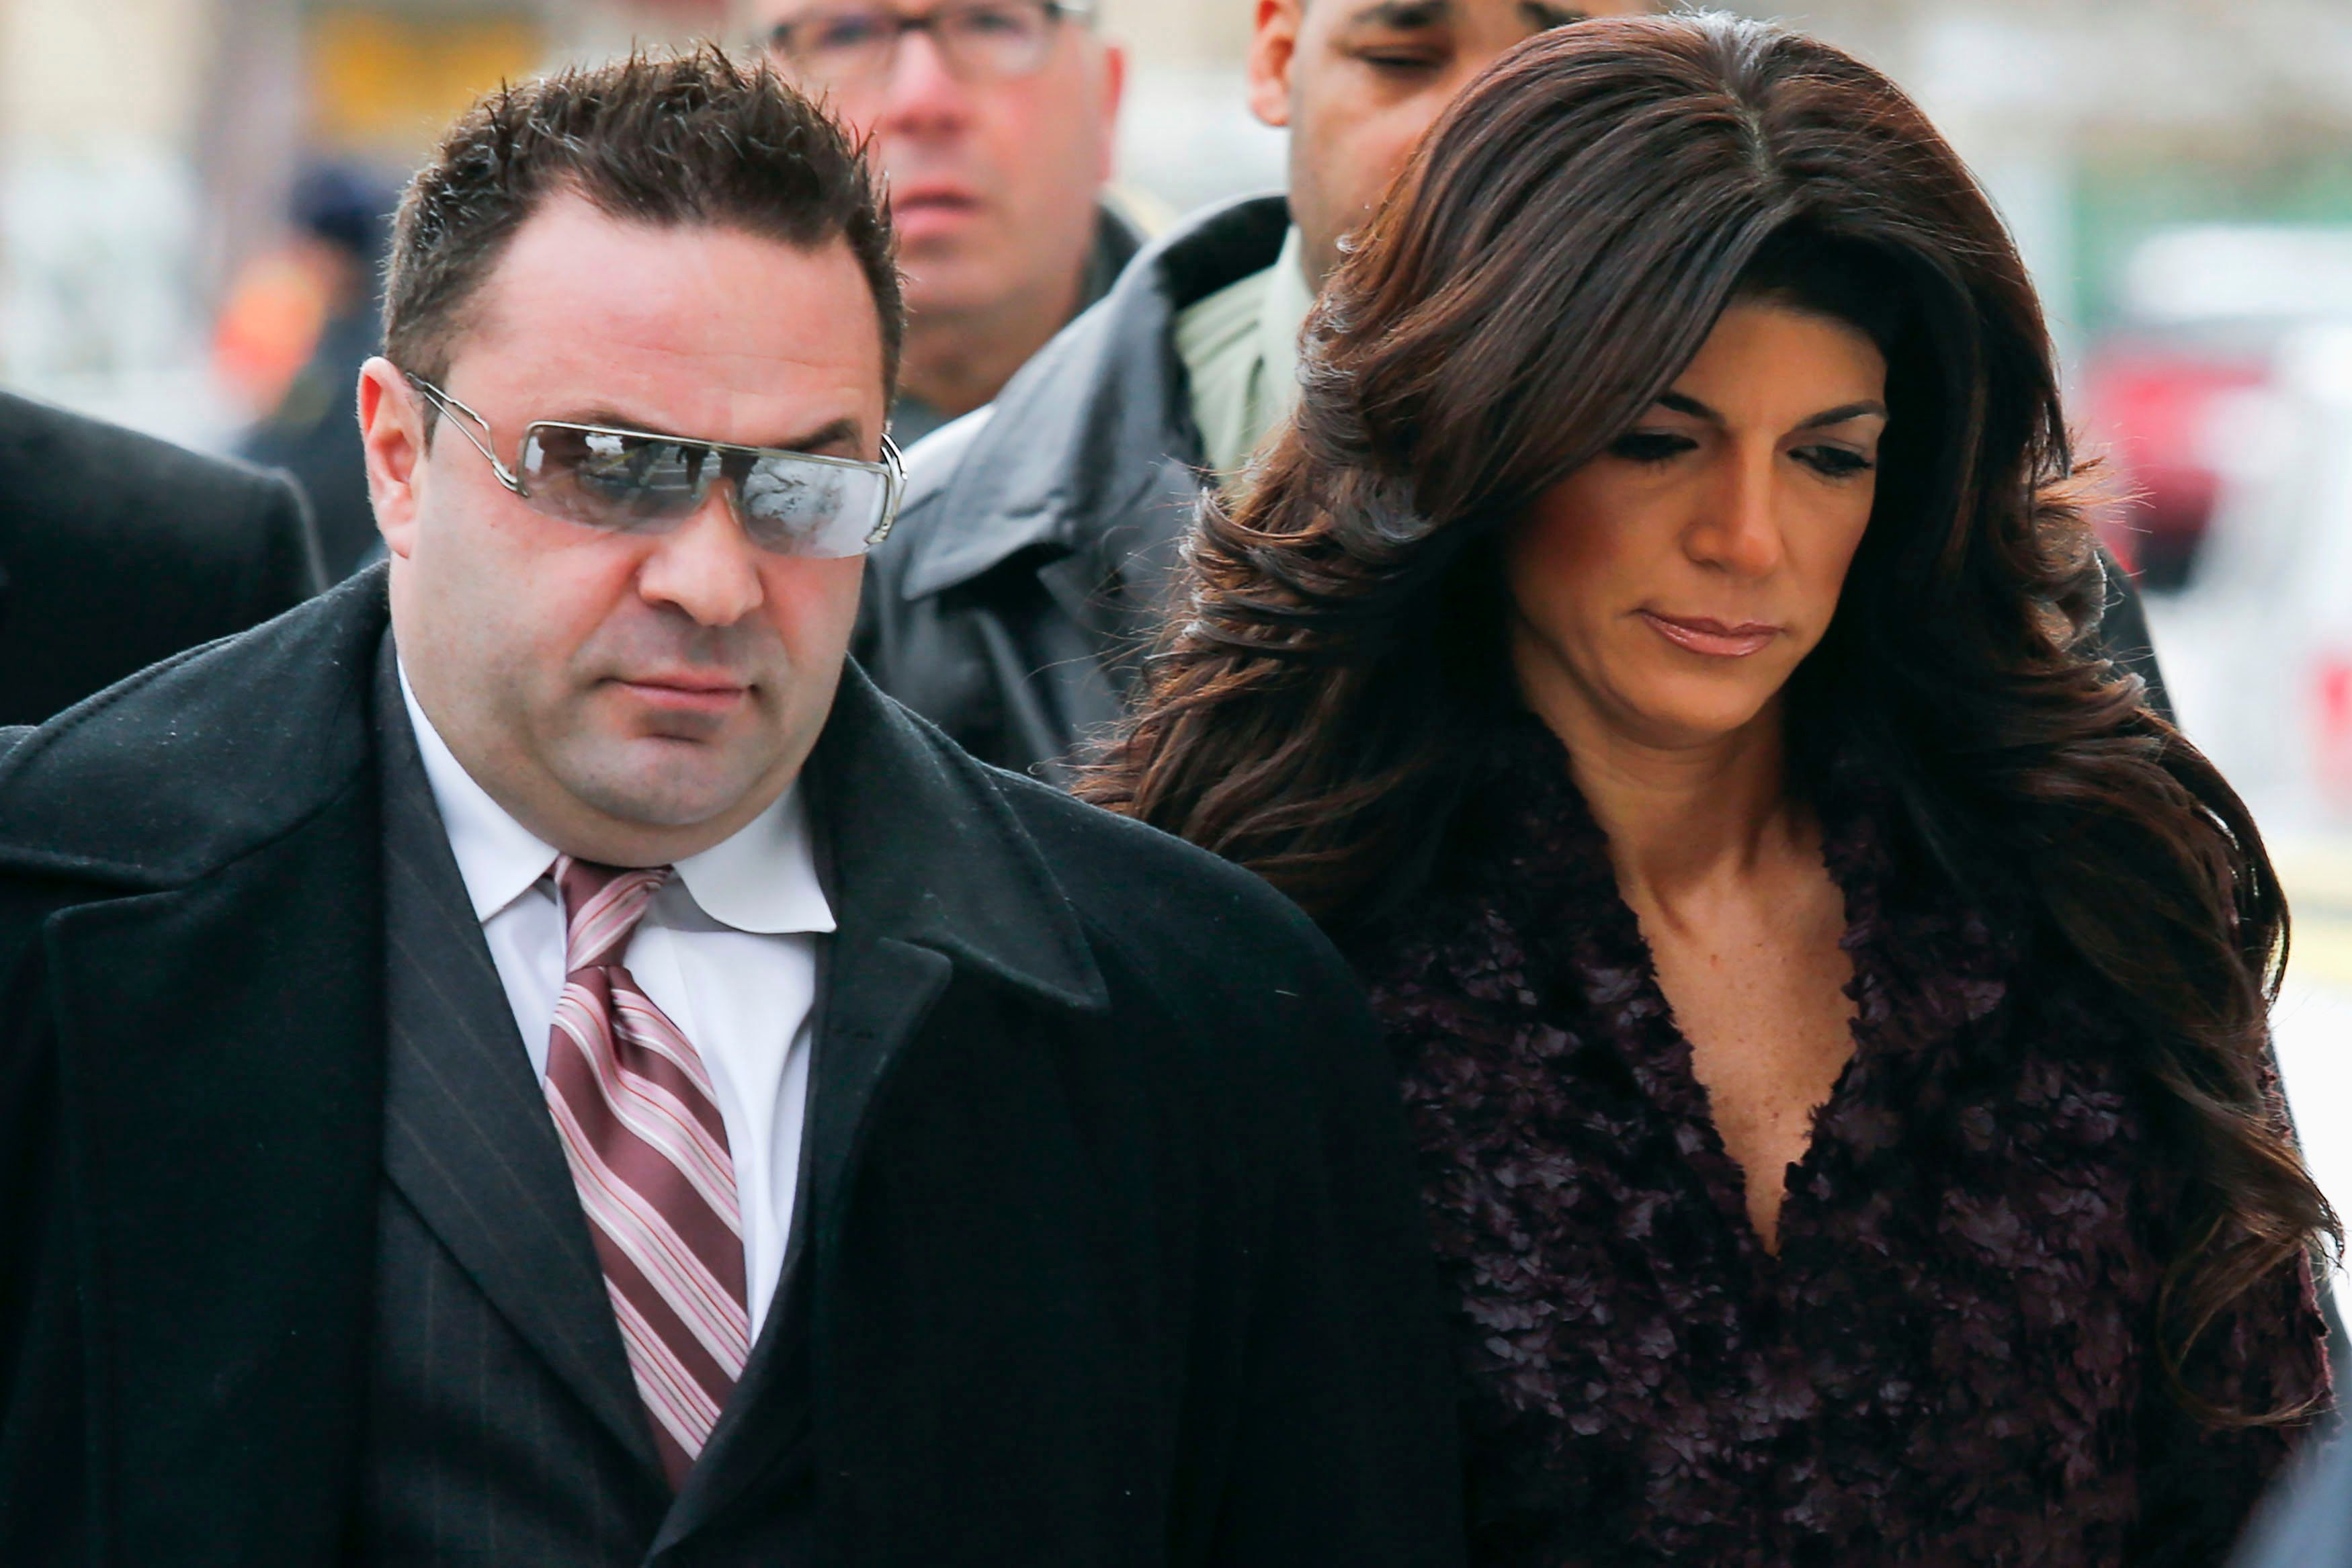 Teresa Giudice and her husband Joe Giudice arrive at the Federal Court in 2014.&nbsp